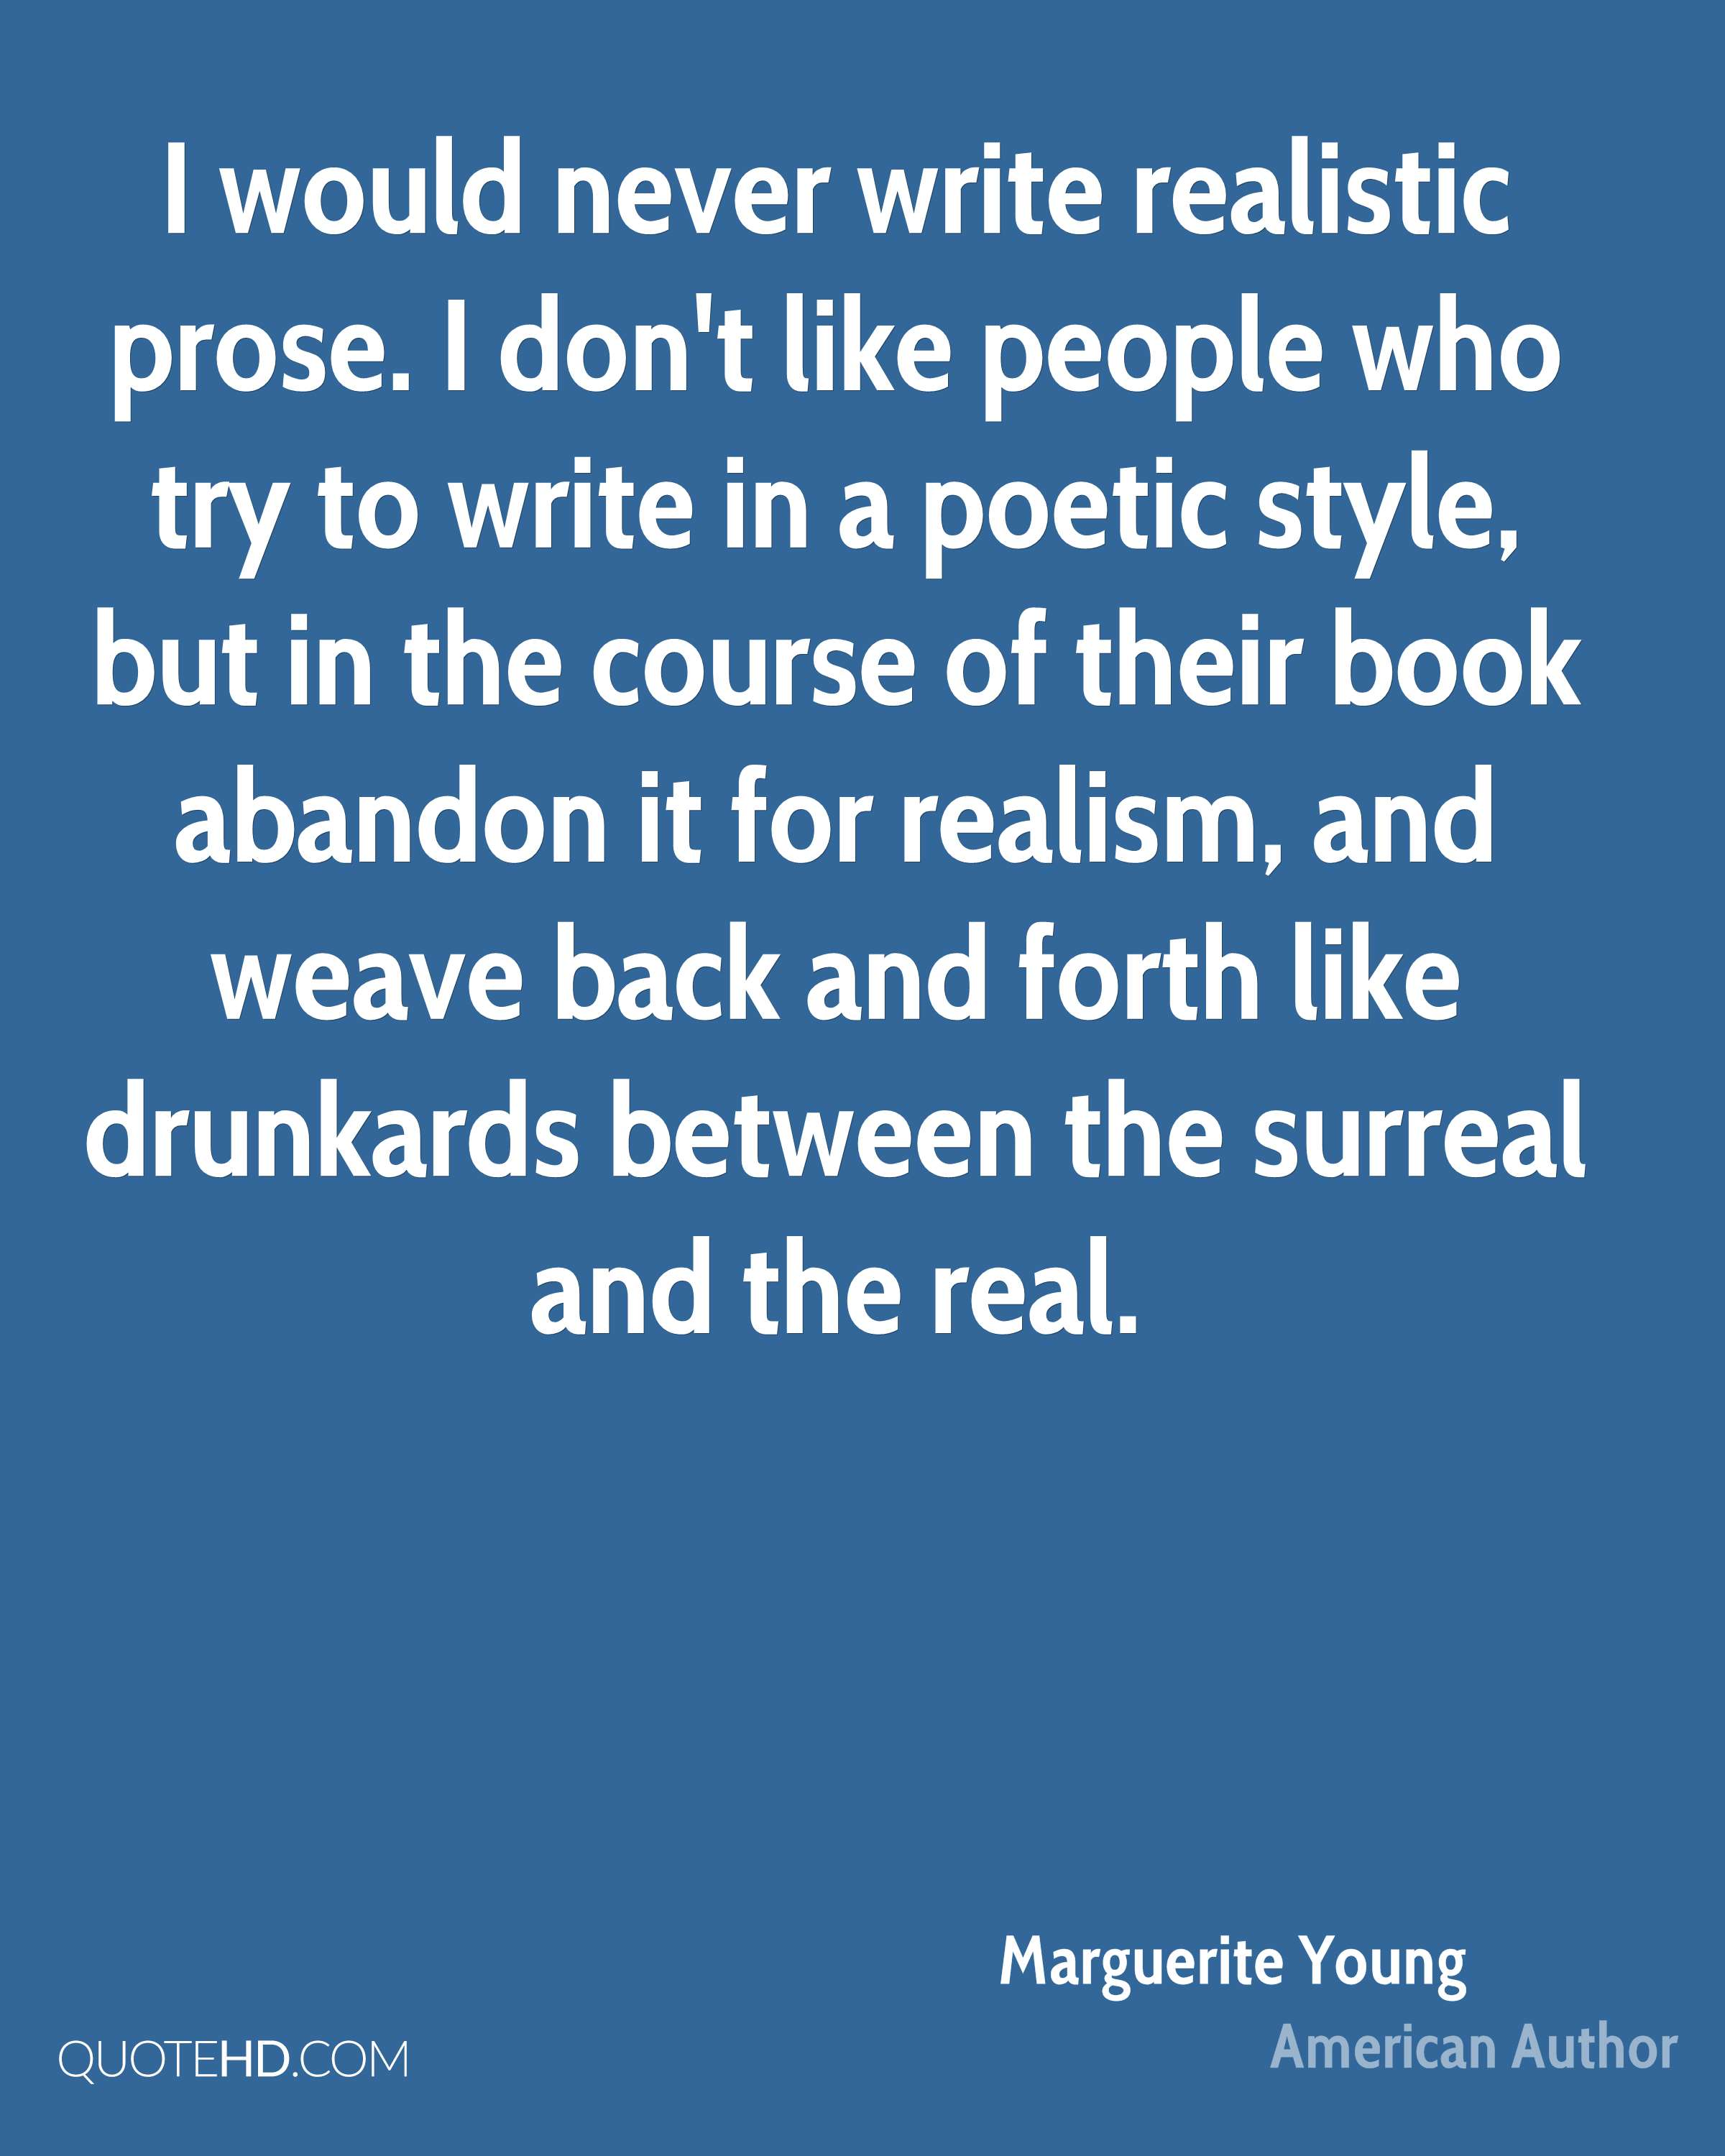 I would never write realistic prose. I don't like people who try to write in a poetic style, but in the course of their book abandon it for realism, and weave back and forth like drunkards between the surreal and the real.